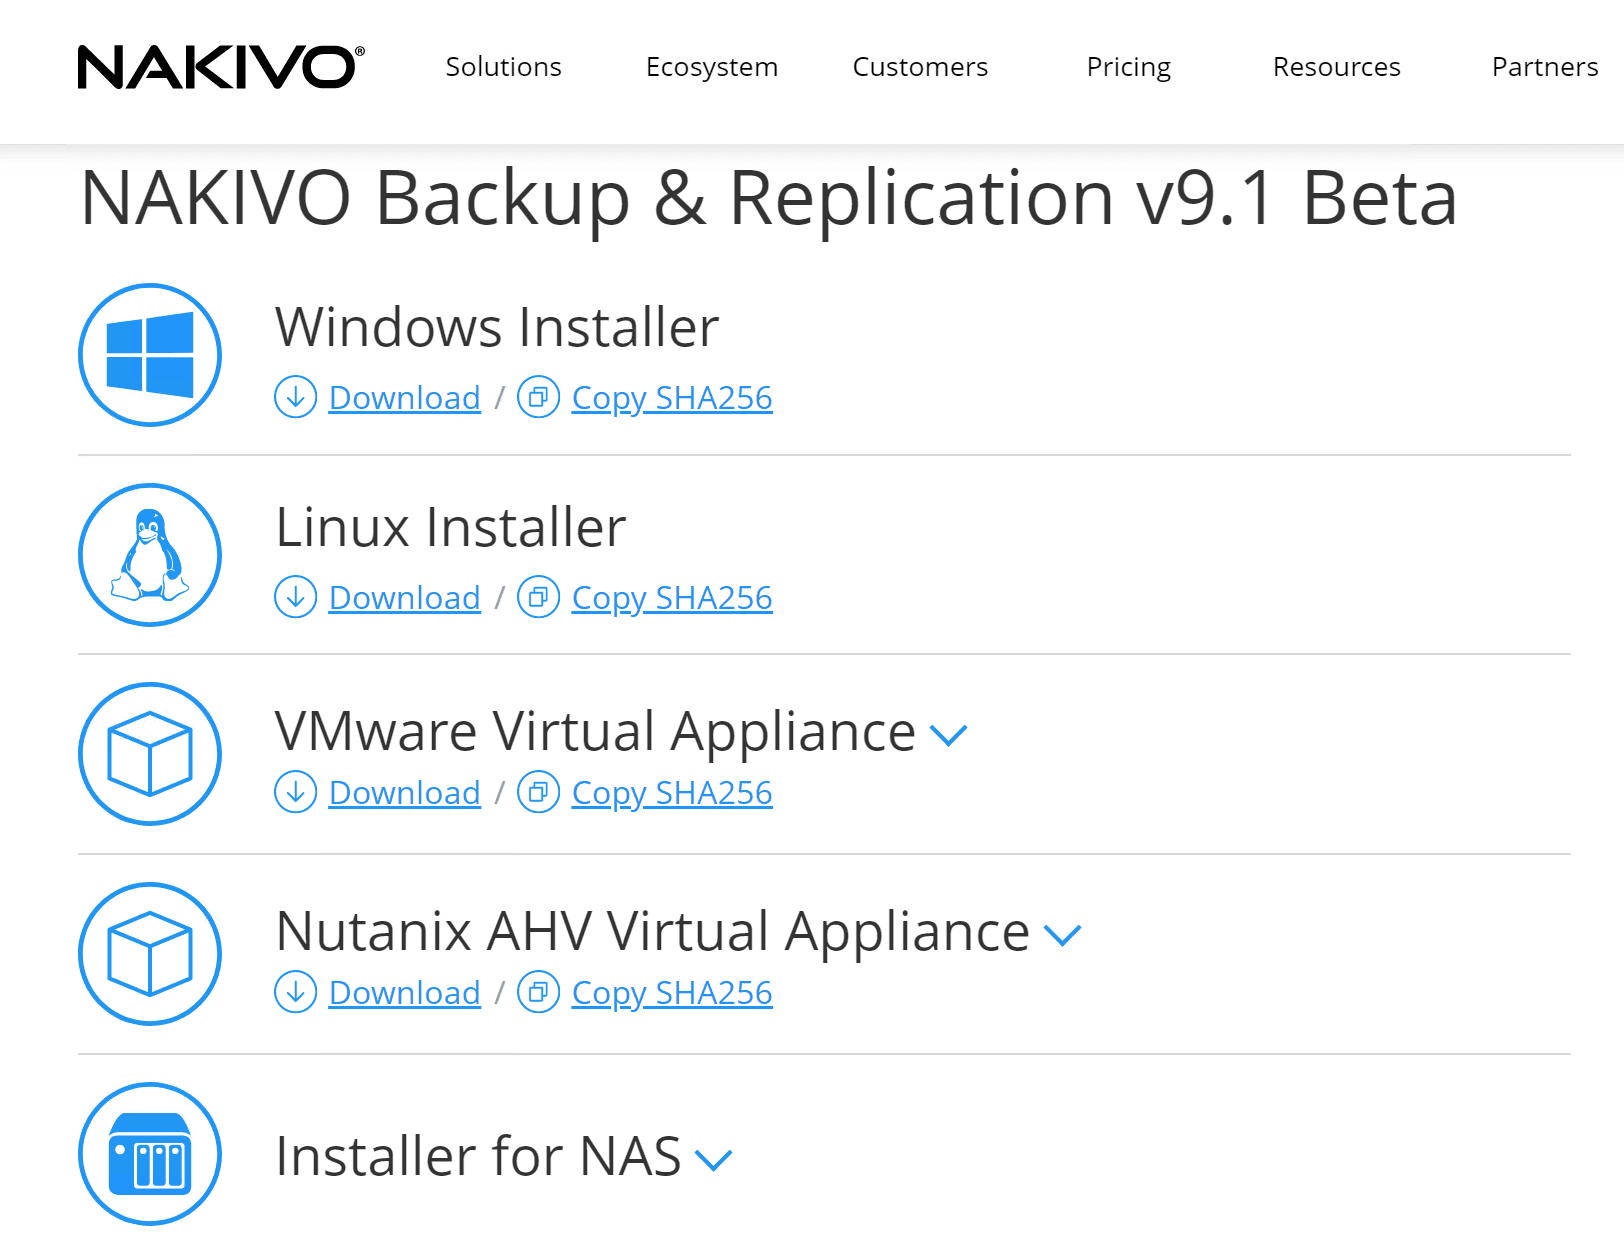 Options-for-installing-NAKIVO-Backup-Replication-v9.1-Beta NAKIVO Backup and Replication v9.1 Beta Released New Features